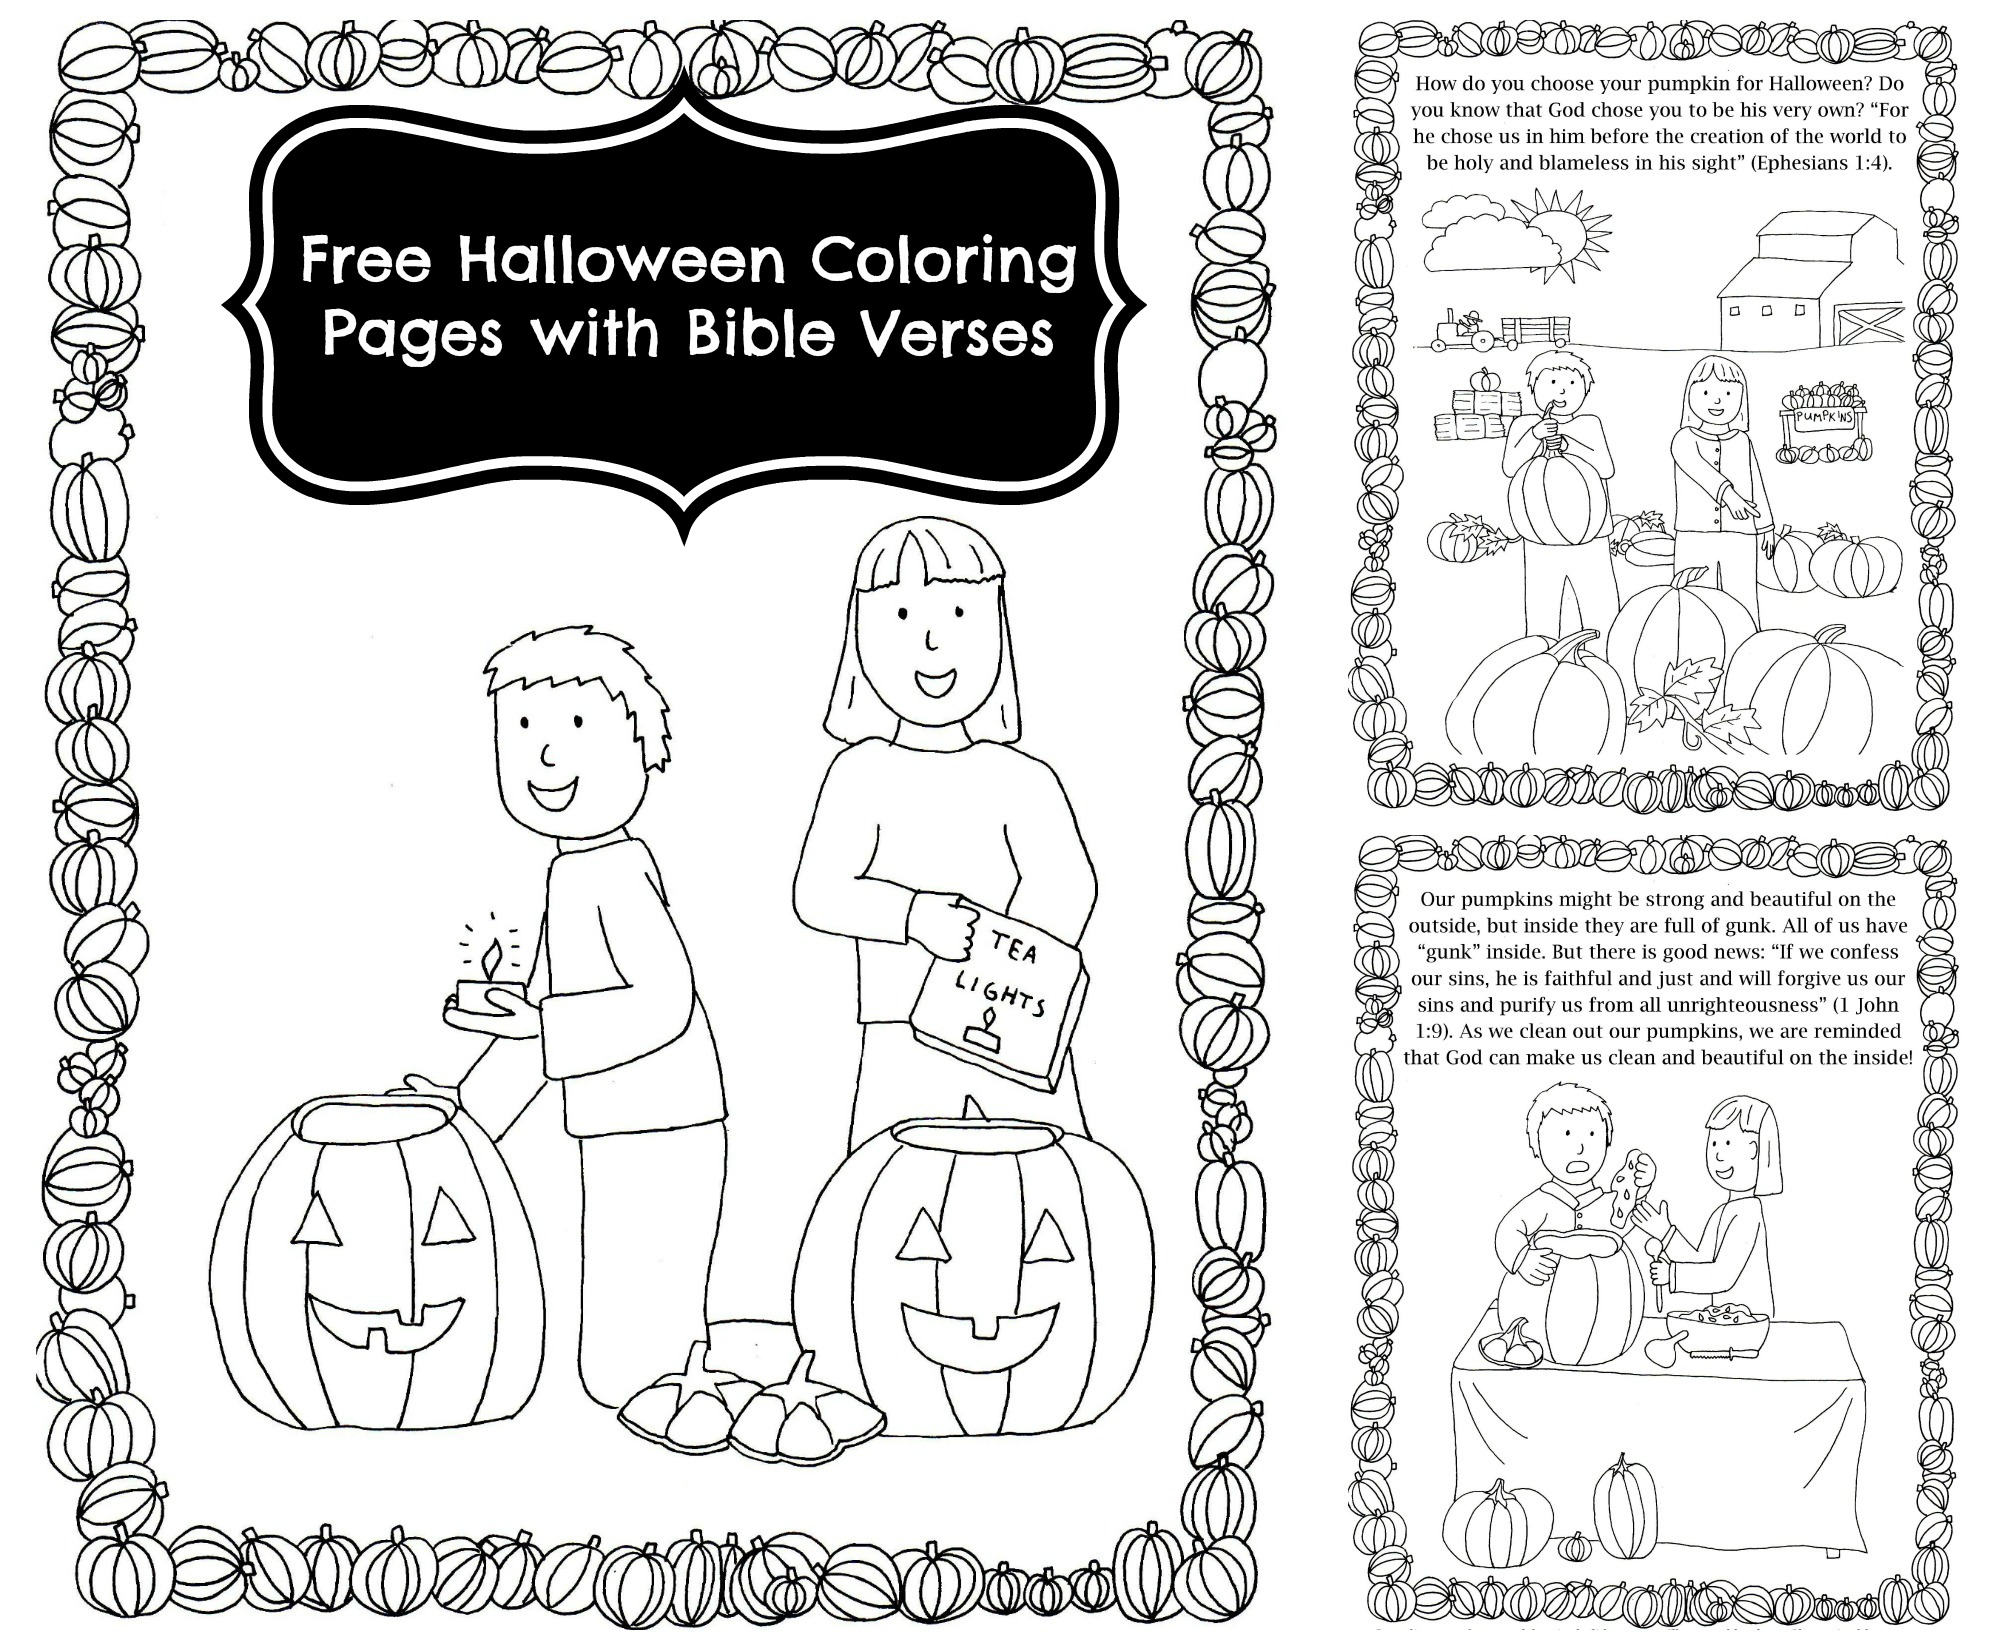 Pumpkin Carving Coloring Pages With Bible Verses For Halloween - Pumpkin-prayer-coloring-page